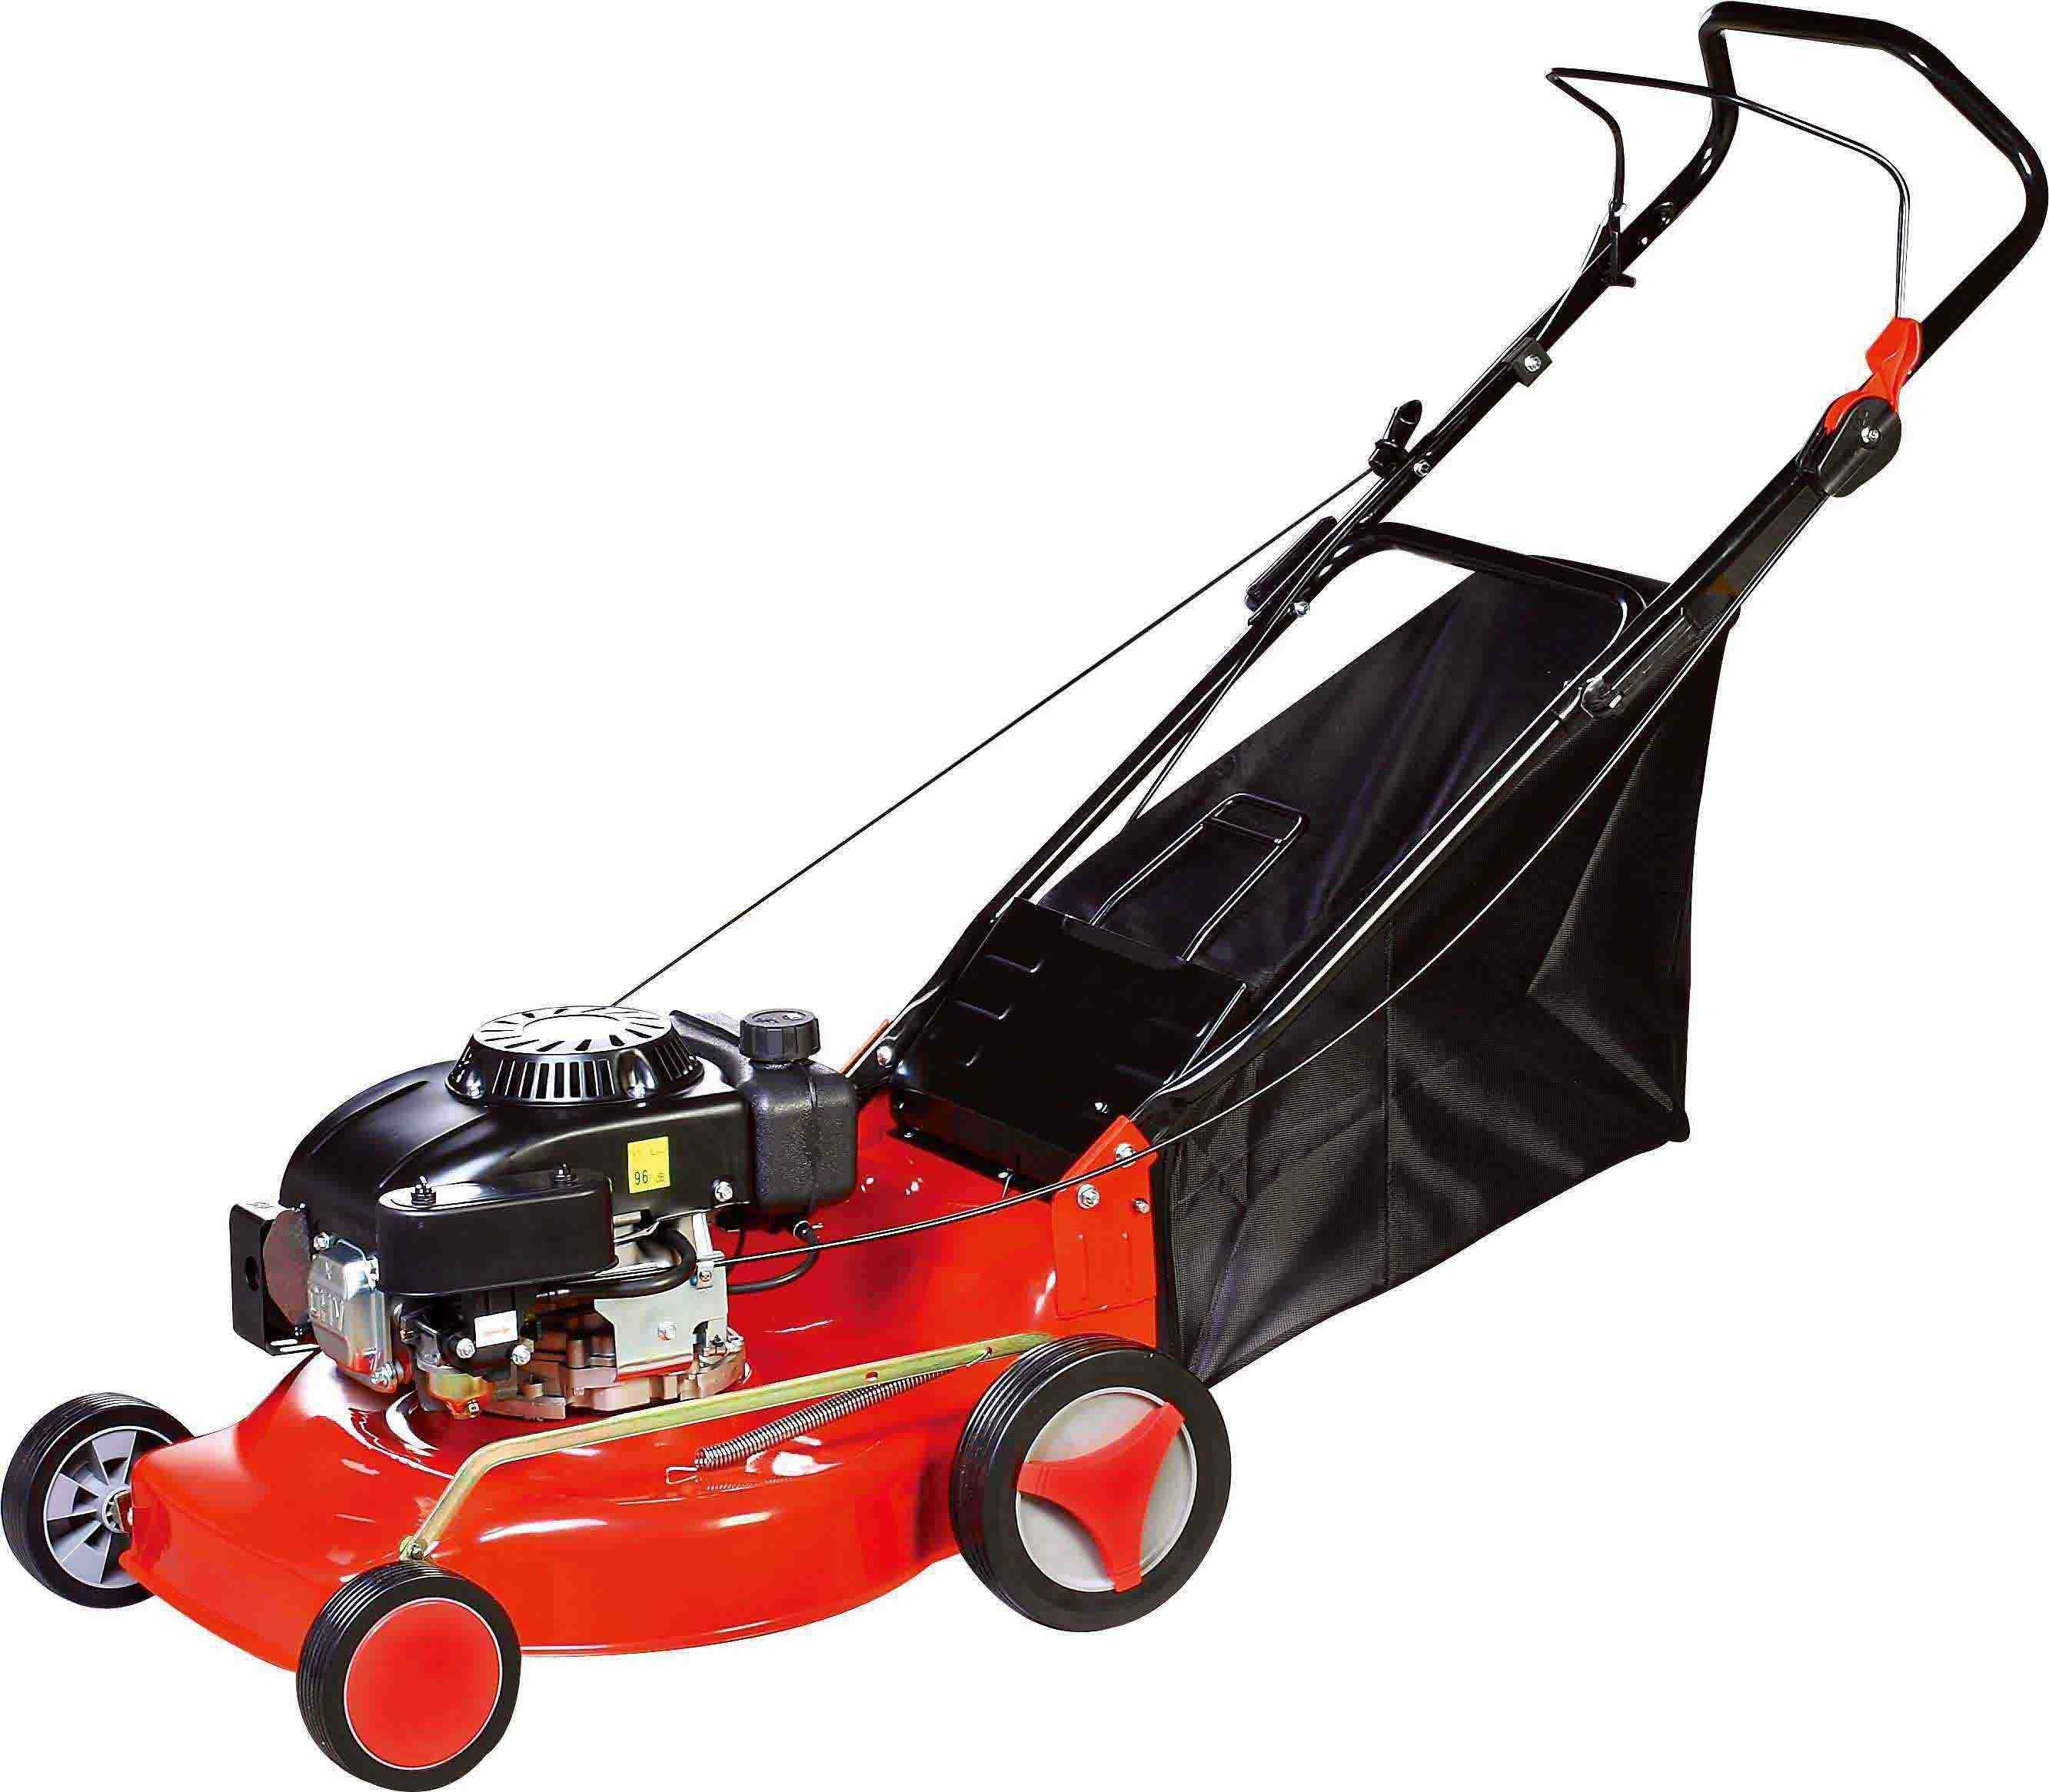 riding mower won't start - Lawn Care  Garden Discussion Topics